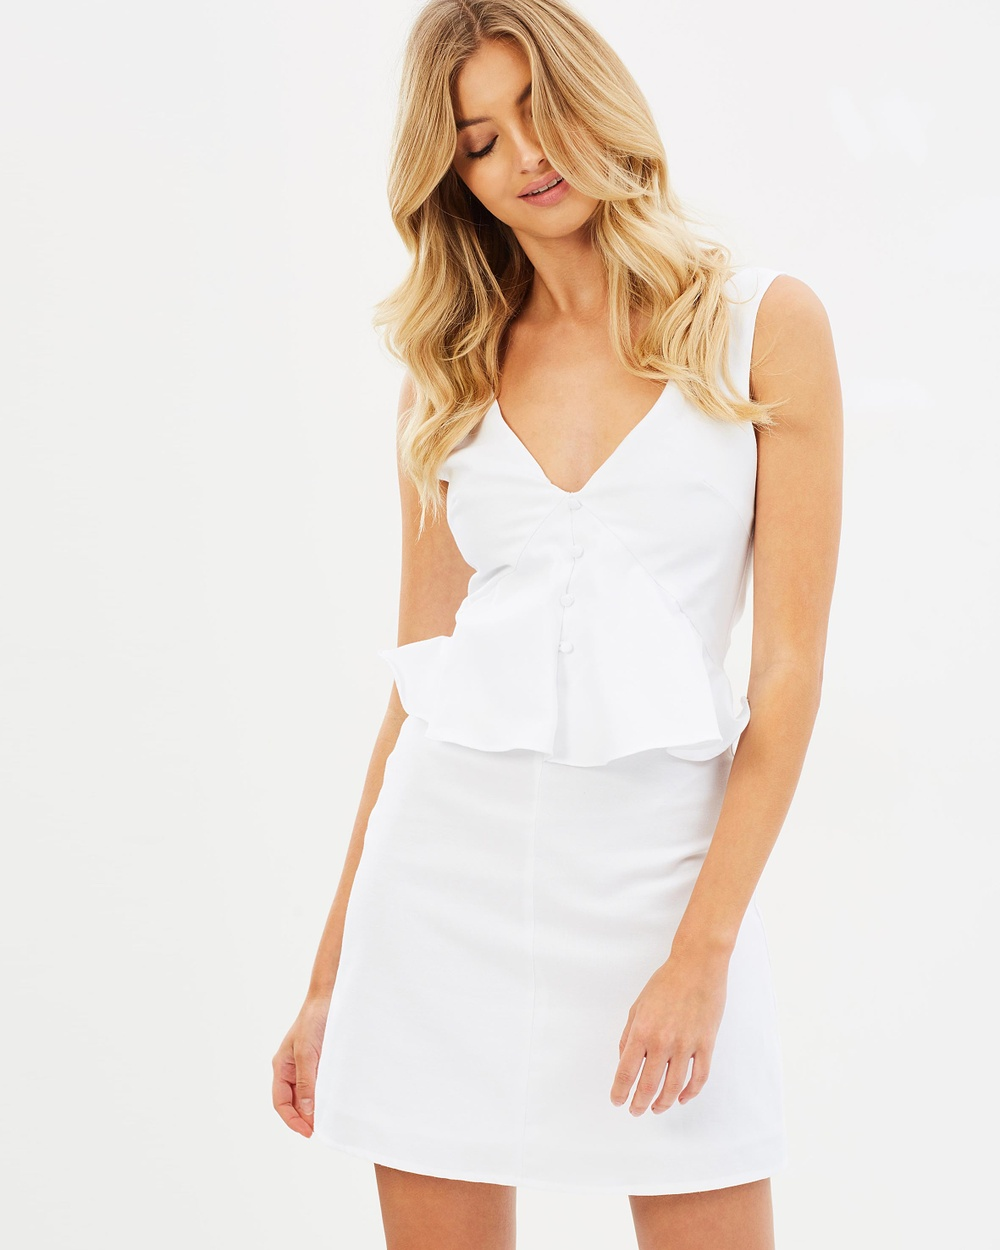 Photo of Atmos & Here White ICONIC EXCLUSIVE - Leah Mini Dress - buy Atmos & Here dresses on sale online